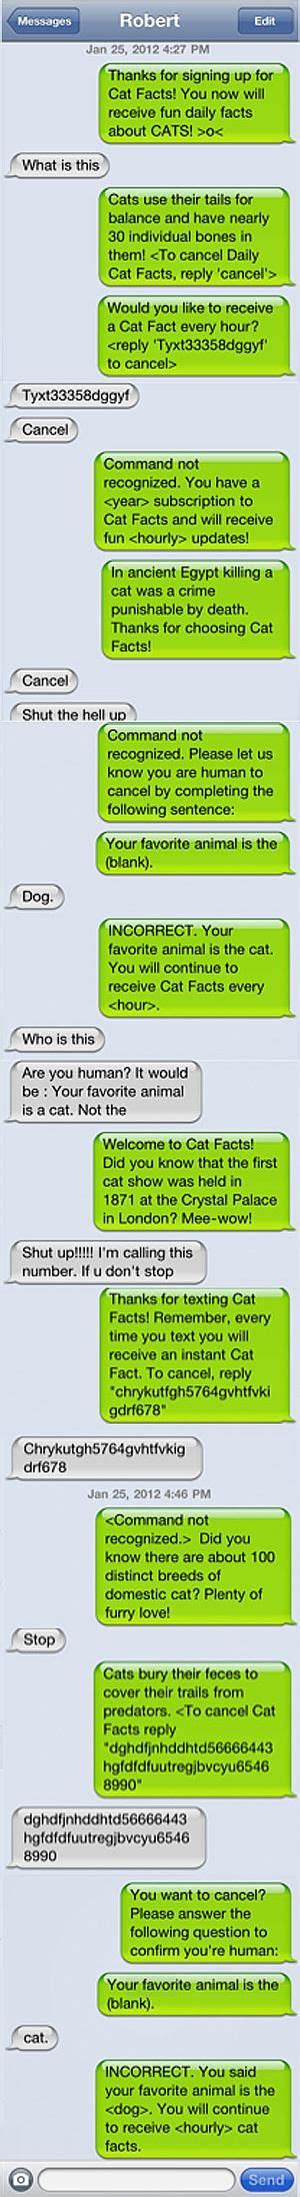 cat facts prank pranks his friend with annoying quot cat facts quot texts